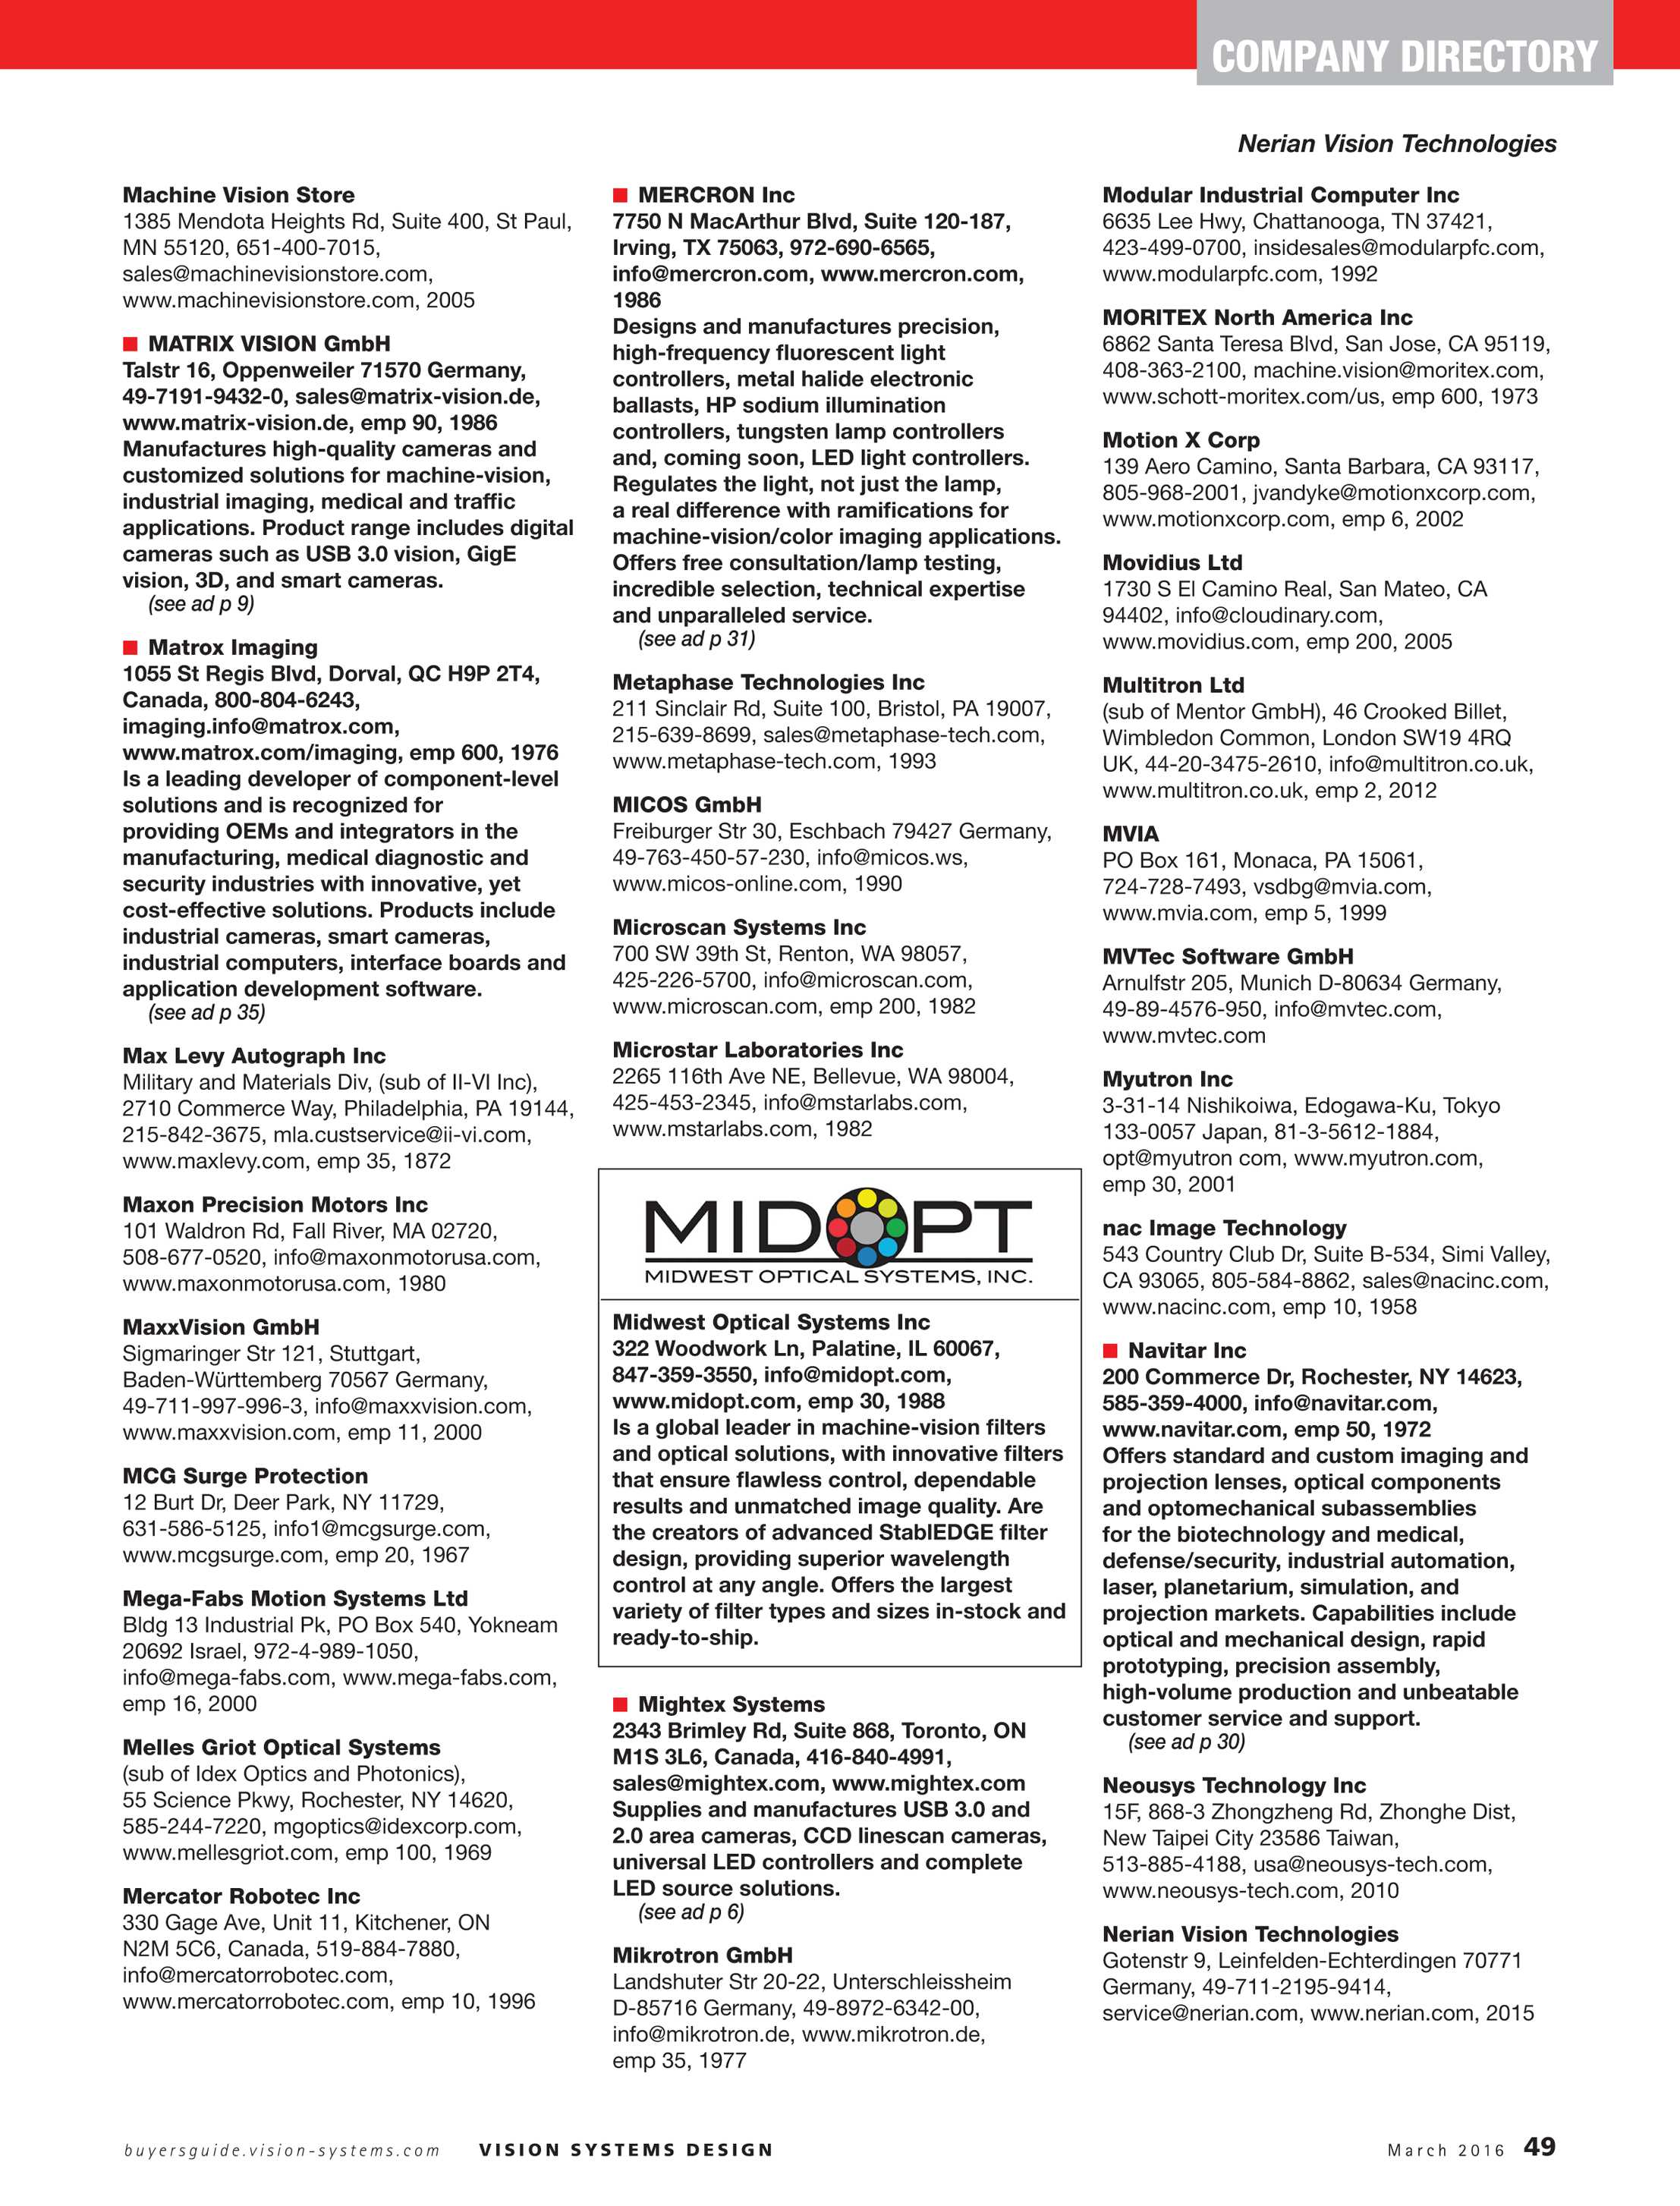 Vision Systems - March 2016 - page 49